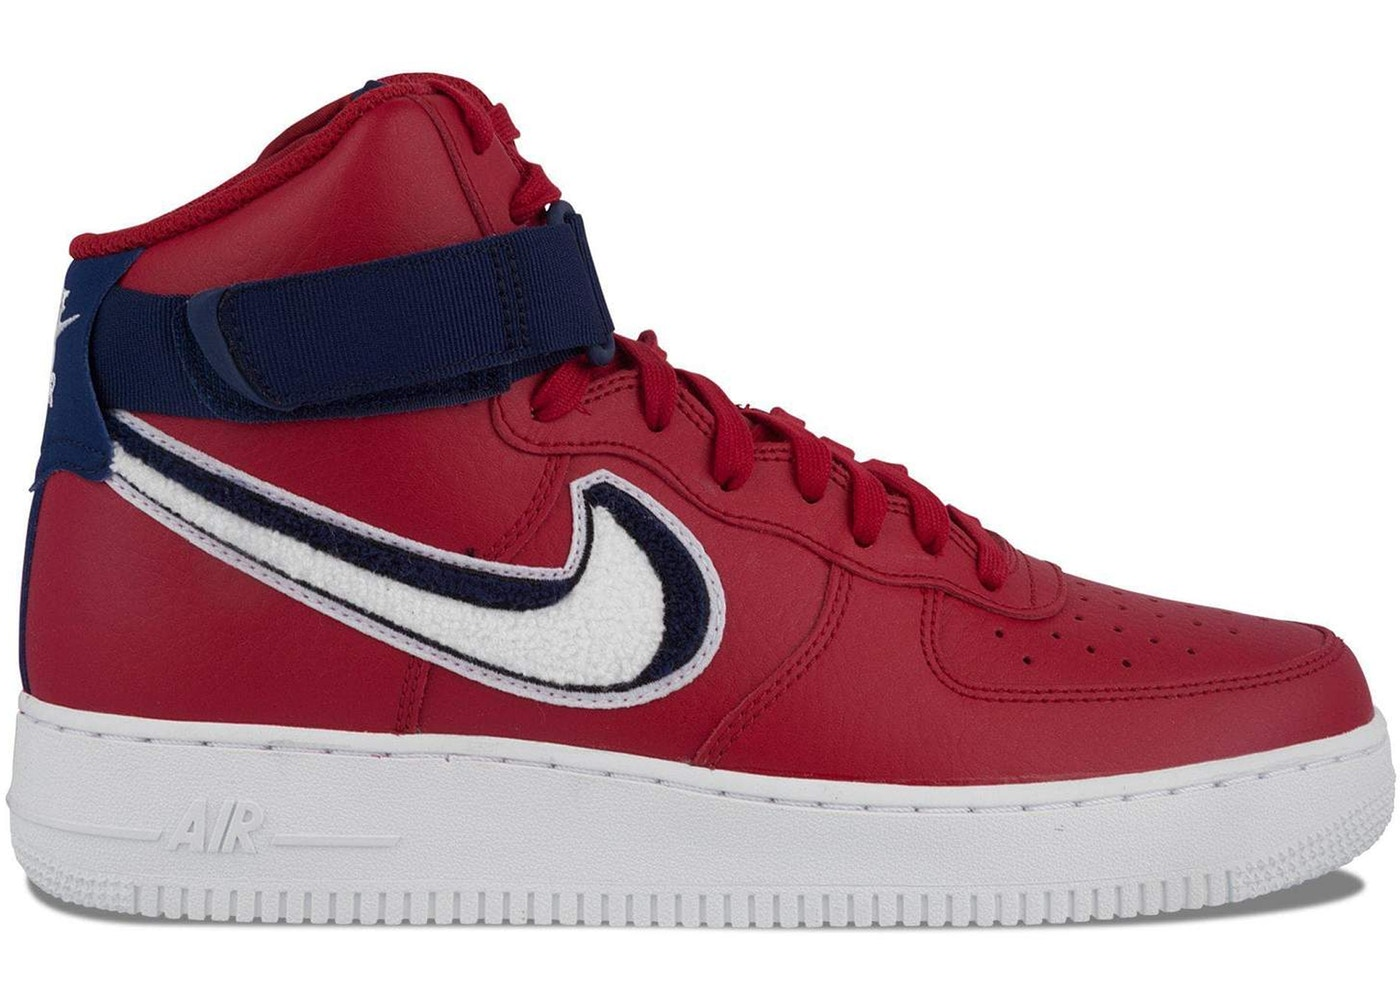 Air Force 1 High 3D Chenille Swoosh Red White Blue - 806403-603 f58115e45